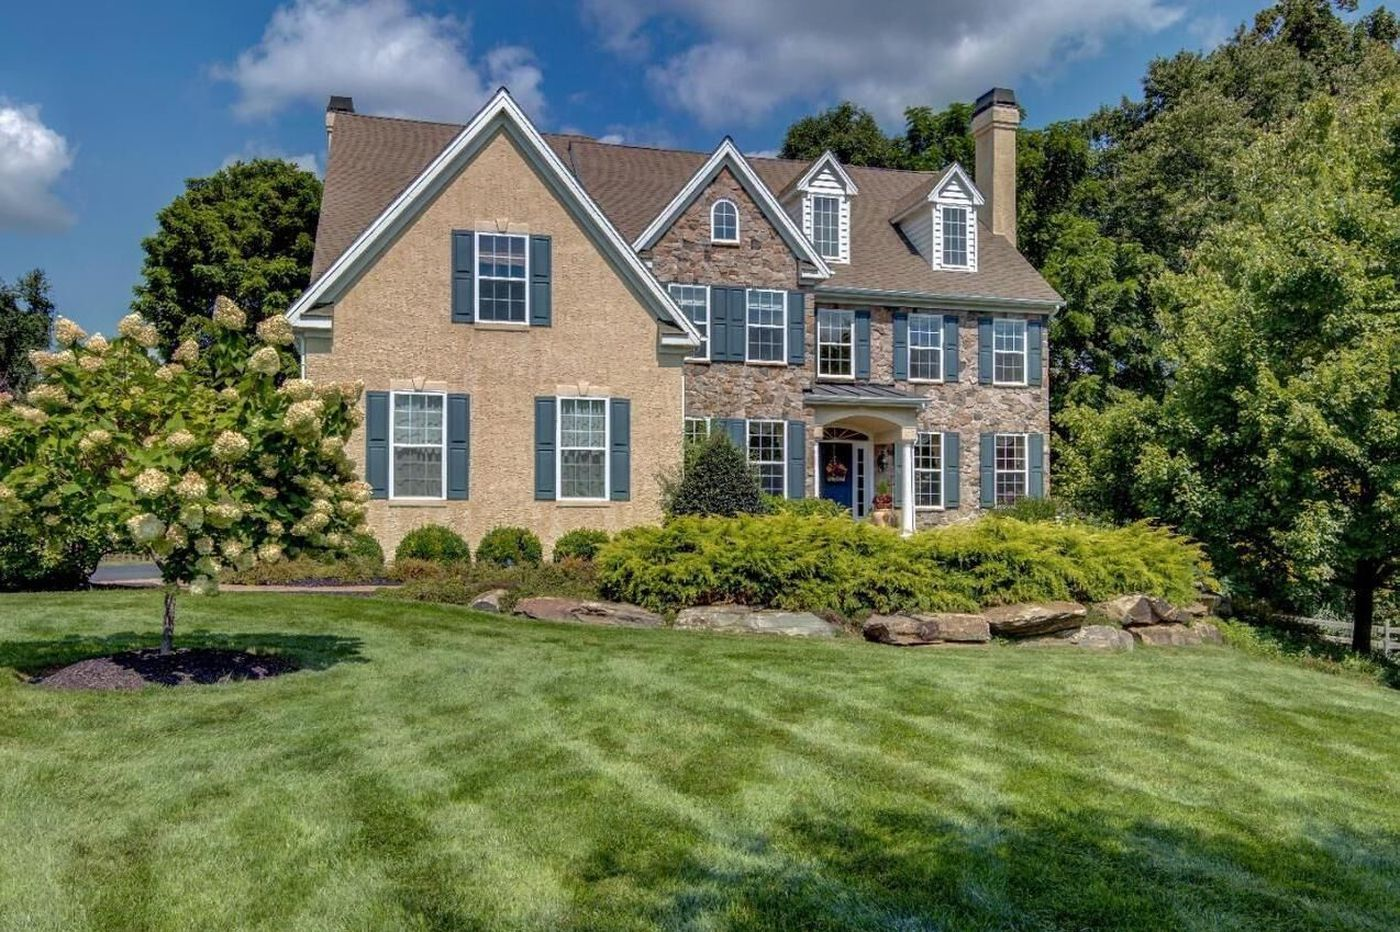 'Bitcoin accepted,' says listing for Chester County house